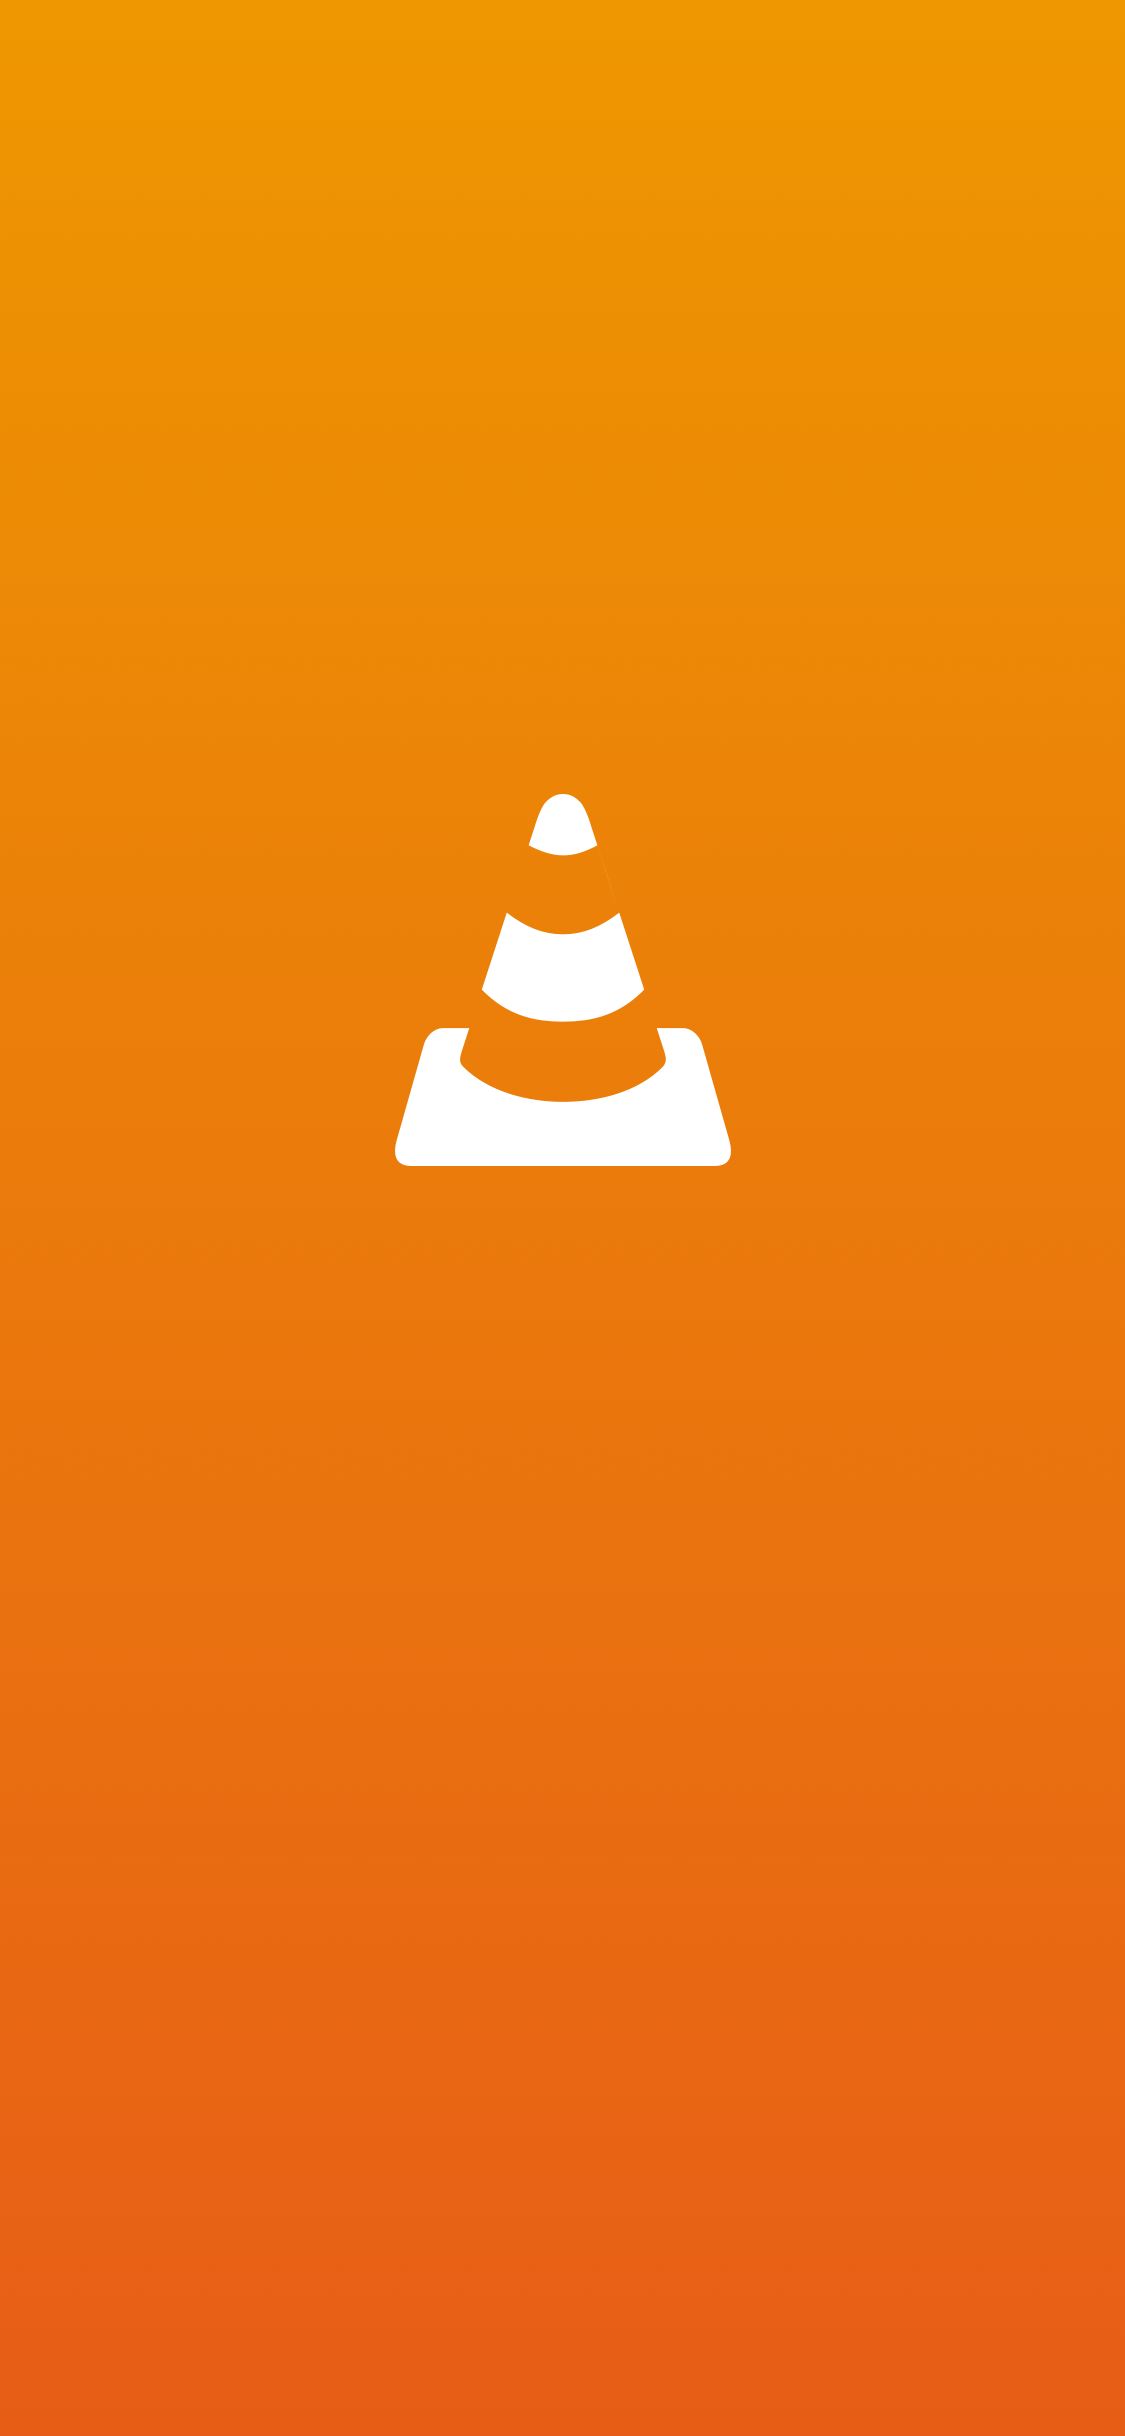 vlc-ios/Images.xcassets/LaunchImage.launchimage/iphonex.png